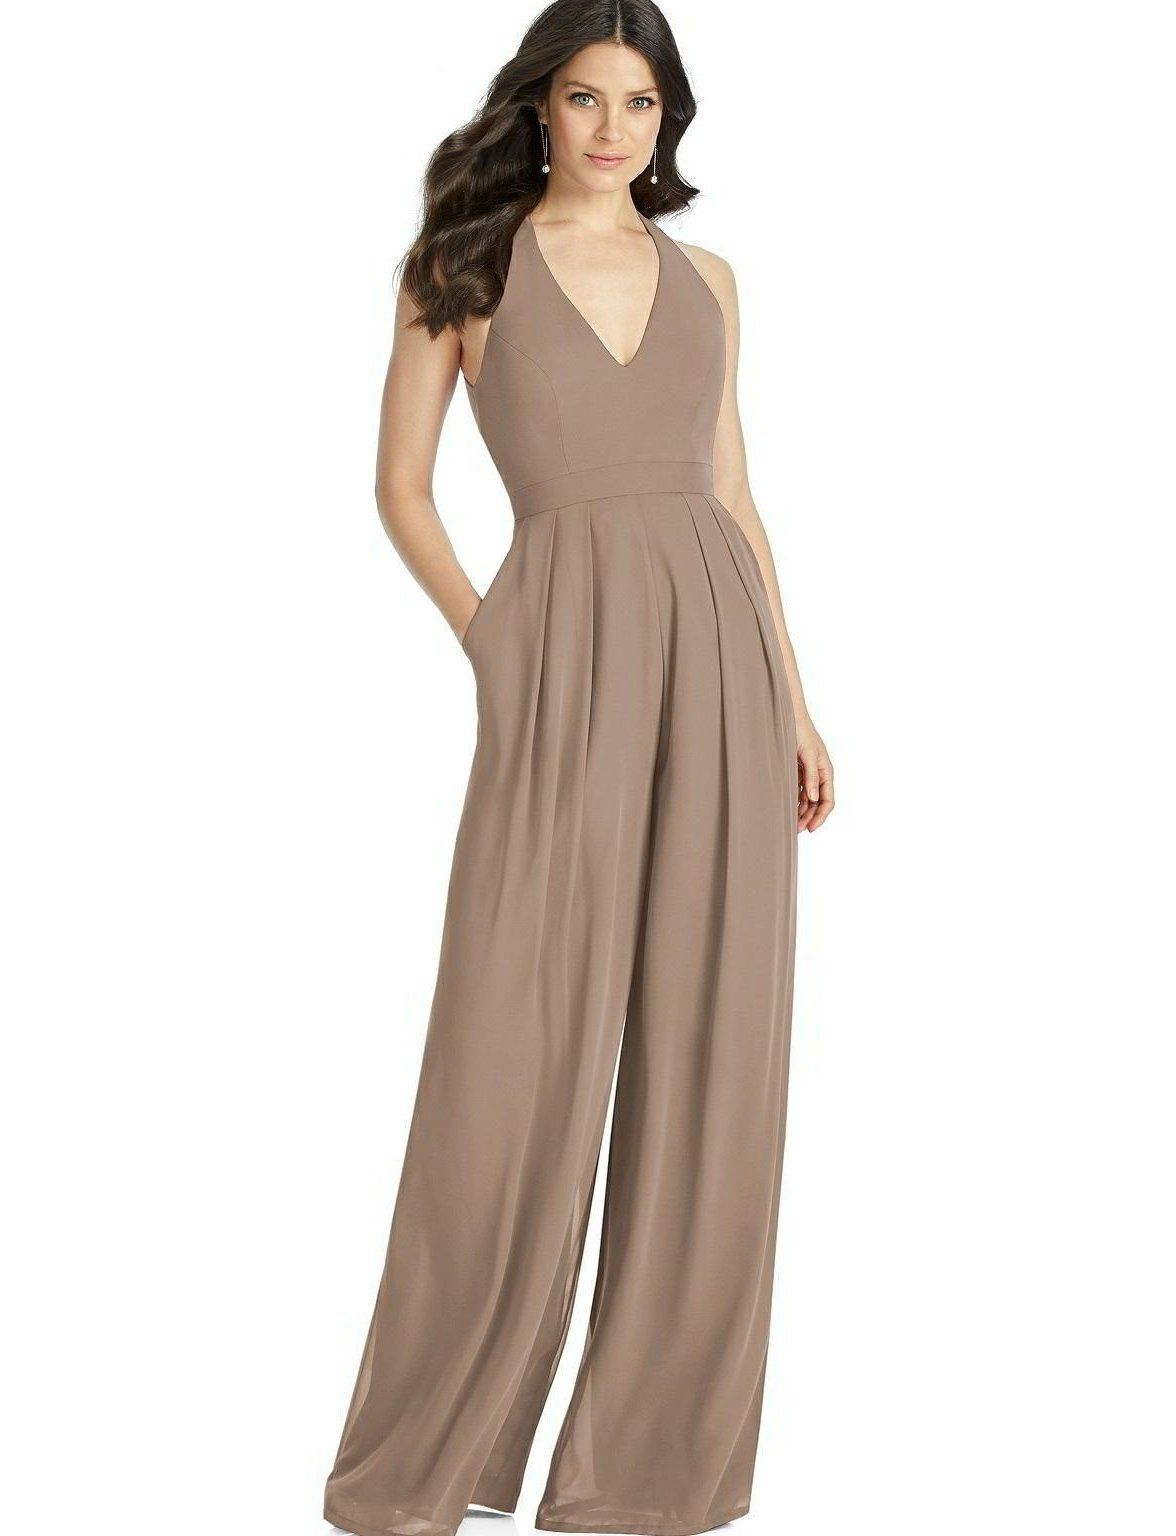 bridesmaid jumpsuit rompers #bridesmaidjumpsuits Dessy Bridesmaid Jumpsuit Arielle In Topaz - Brown #bridesmaidjumpsuits Dessy Bridesmaid Jumpsuit Arielle In Topaz - Brown #bridesmaidjumpsuits Dessy Bridesmaid Jumpsuit Arielle In Topaz - Brown #bridesmaidjumpsuits Dessy Bridesmaid Jumpsuit Arielle In Topaz - Brown #bridesmaidjumpsuits Dessy Bridesmaid Jumpsuit Arielle In Topaz - Brown #bridesmaidjumpsuits Dessy Bridesmaid Jumpsuit Arielle In Topaz - Brown #bridesmaidjumpsuits Dessy Bridesmaid Ju